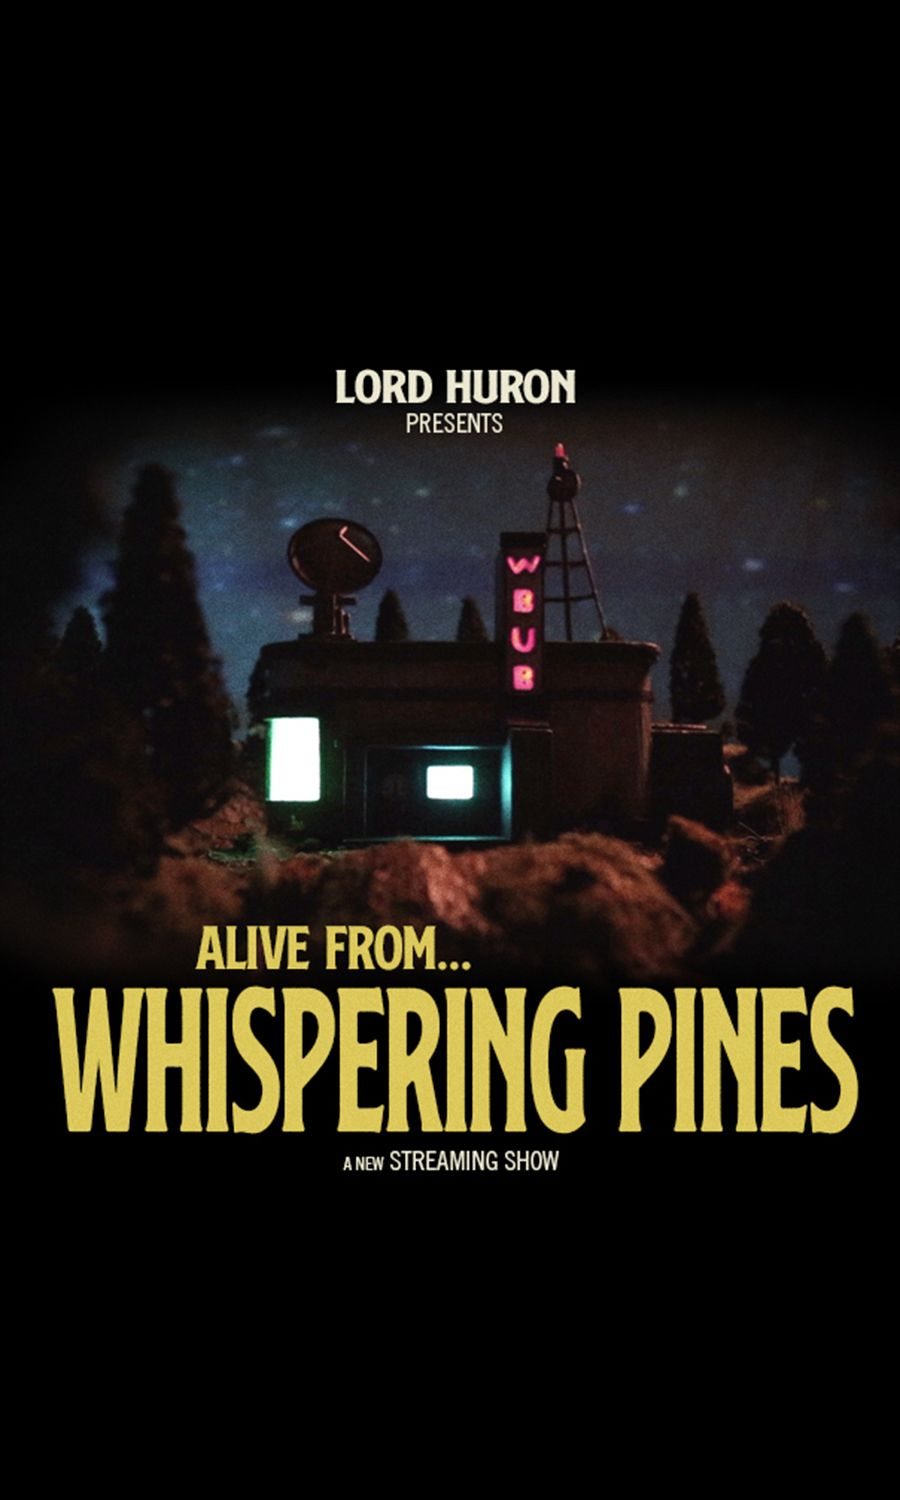 Alive From Whispering Pines